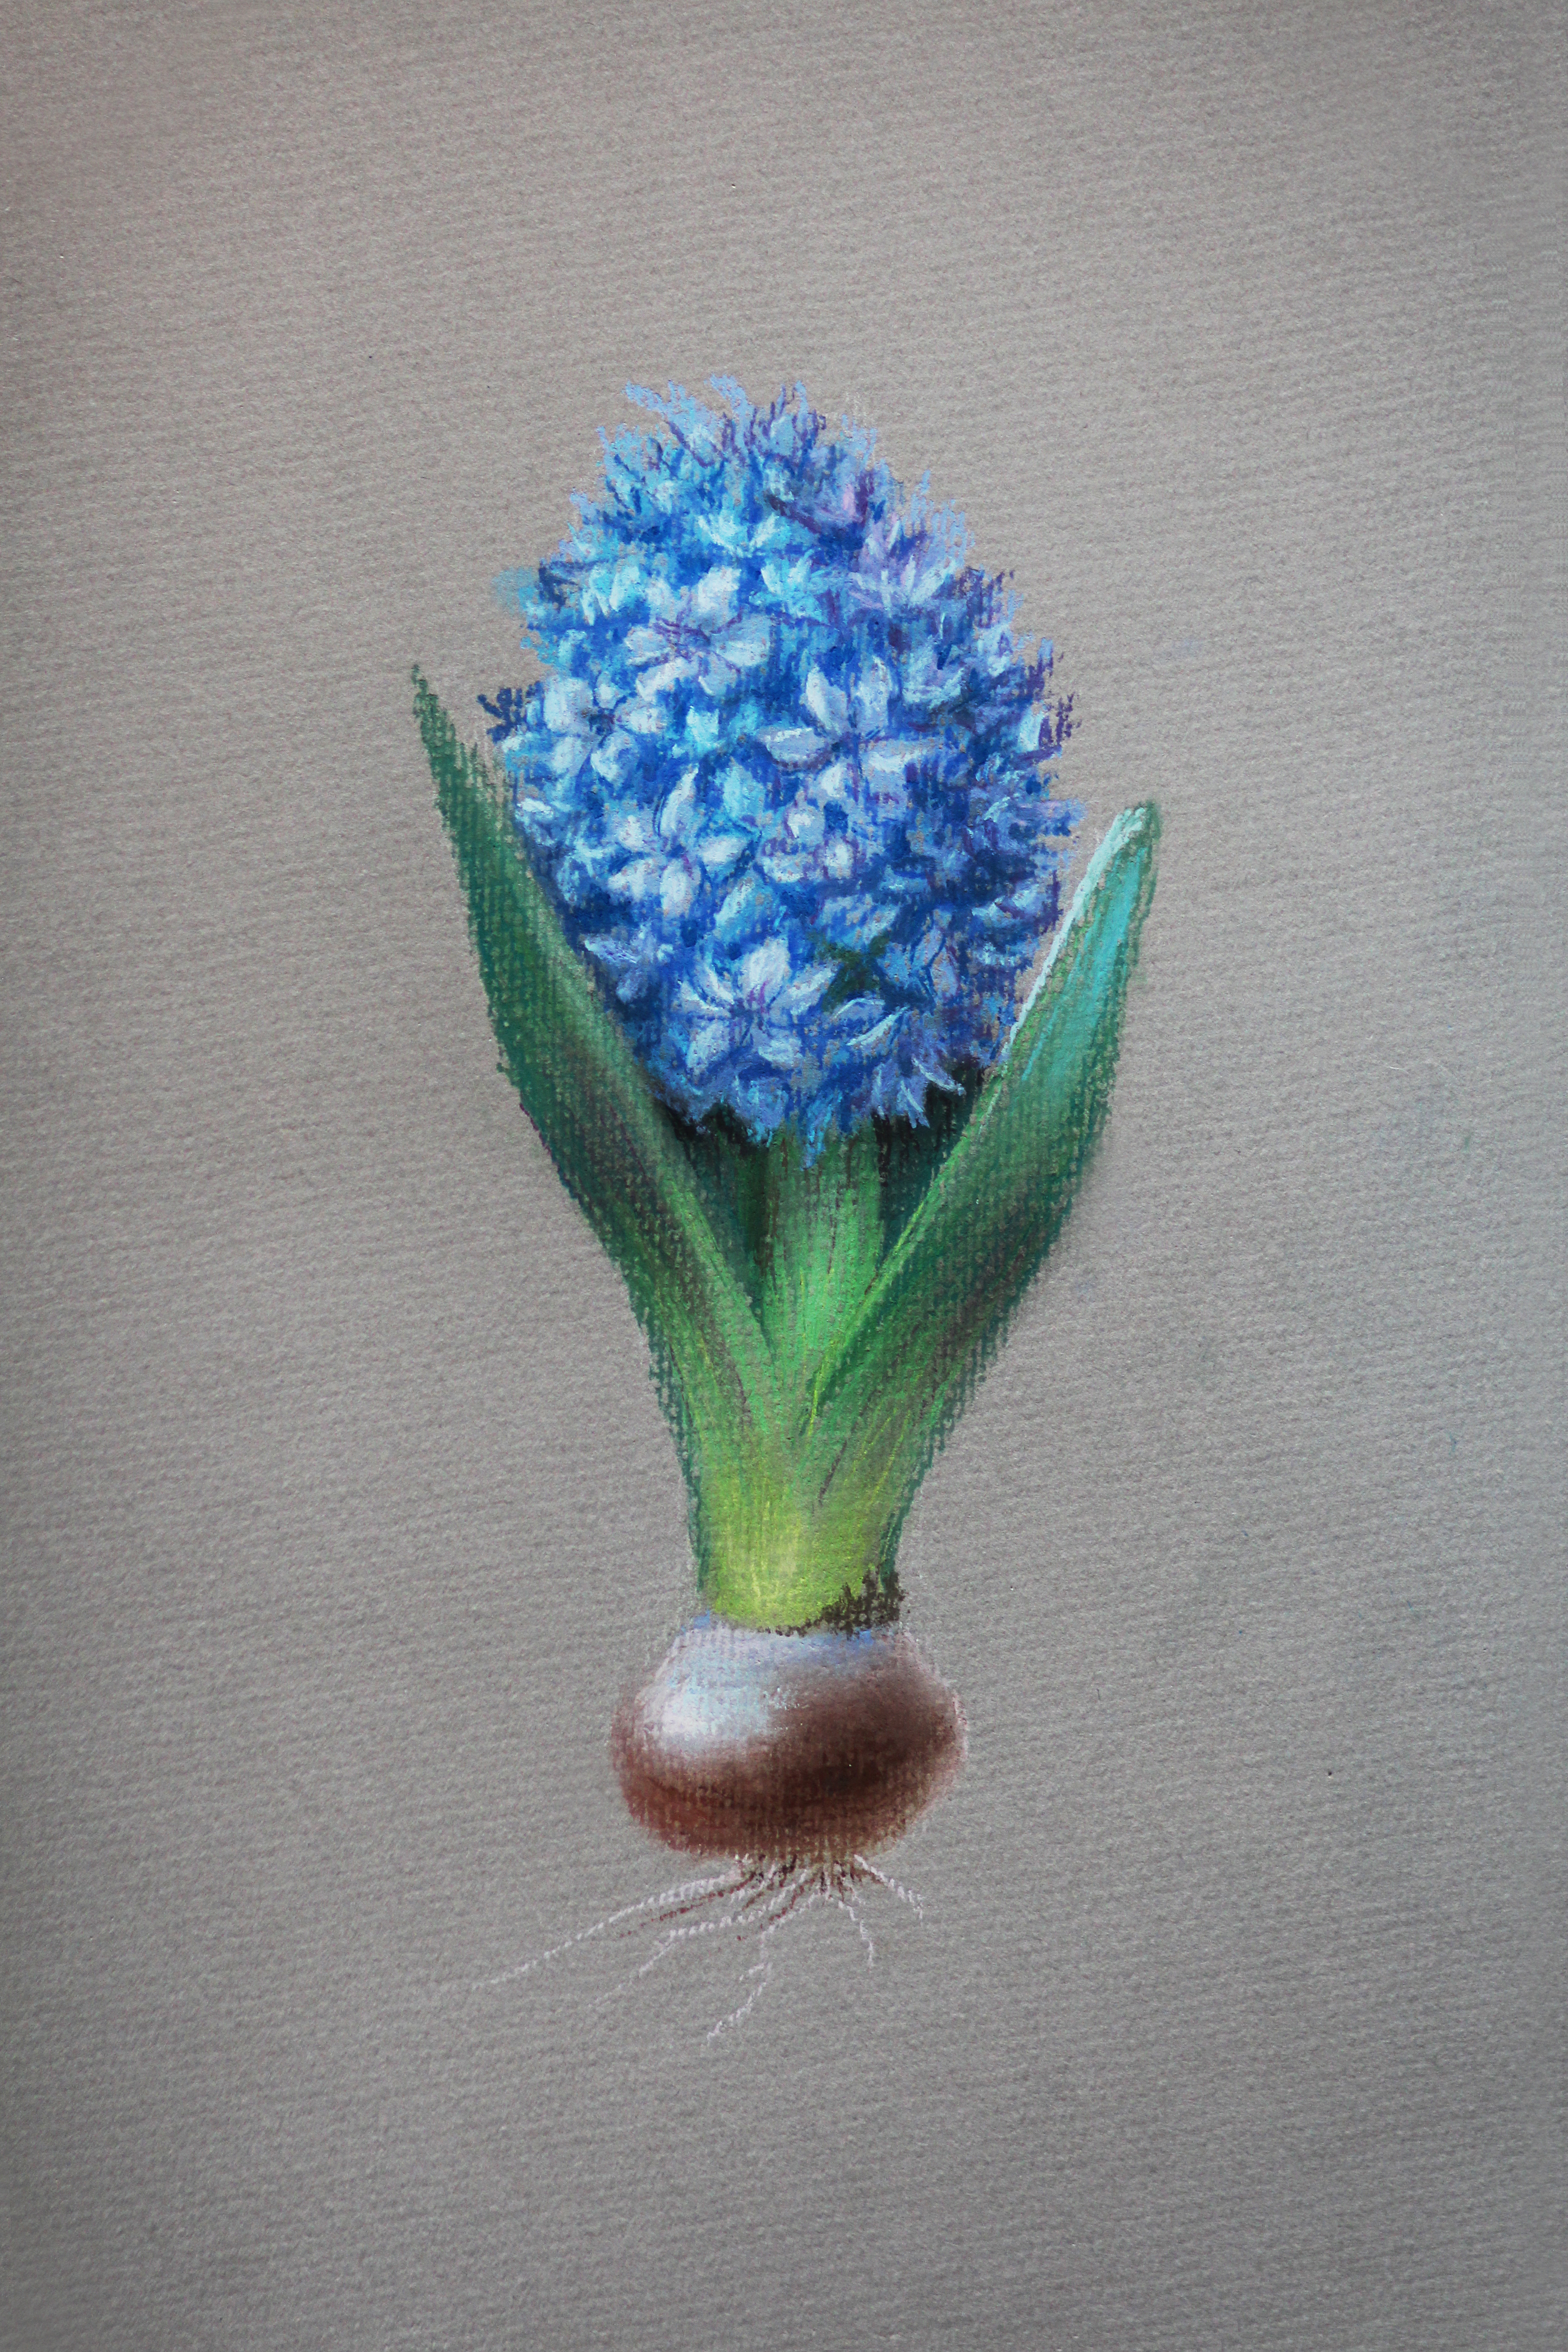 Flower hyacinth pastel art by artist Alice Croft Цветок Гиацинт Пастель